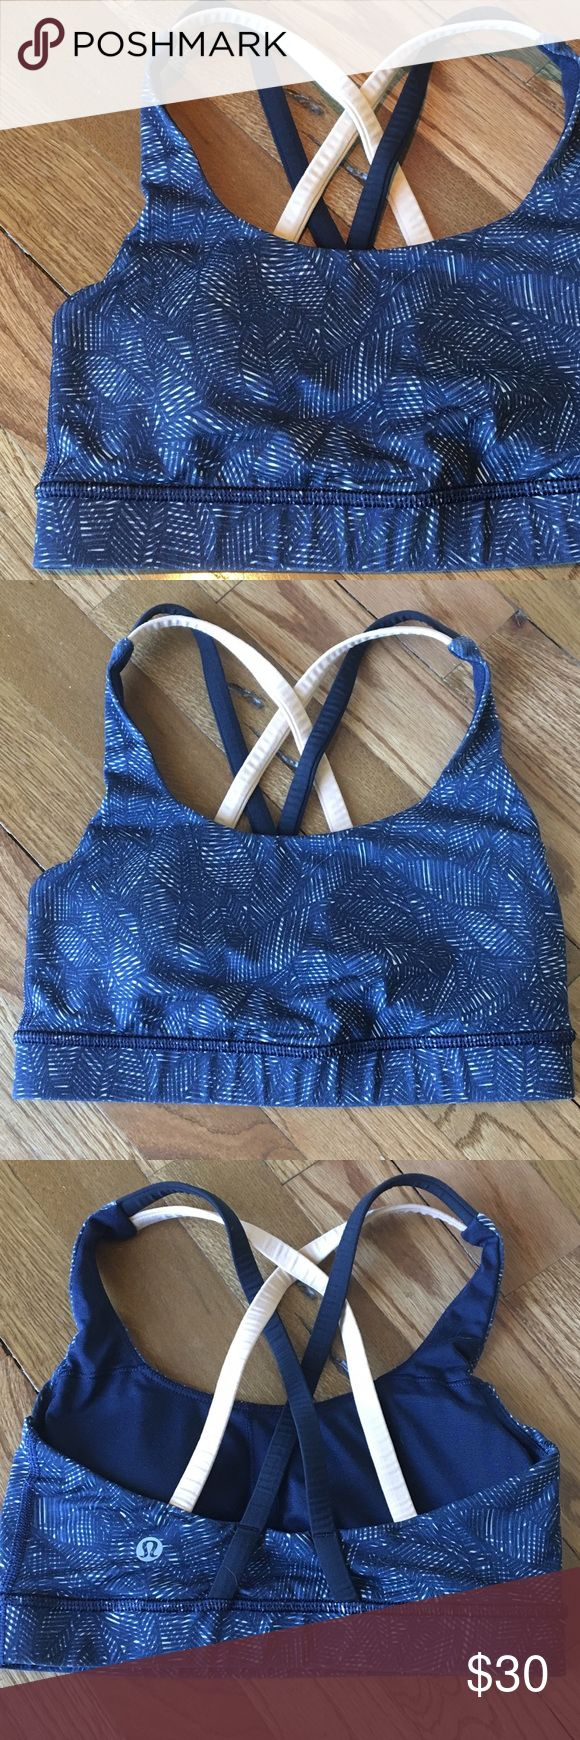 Lululemon sports bra Black and cream sports bra in excellent condition. No signs of wear. lululemon athletica Intimates & Sleepwear Bras